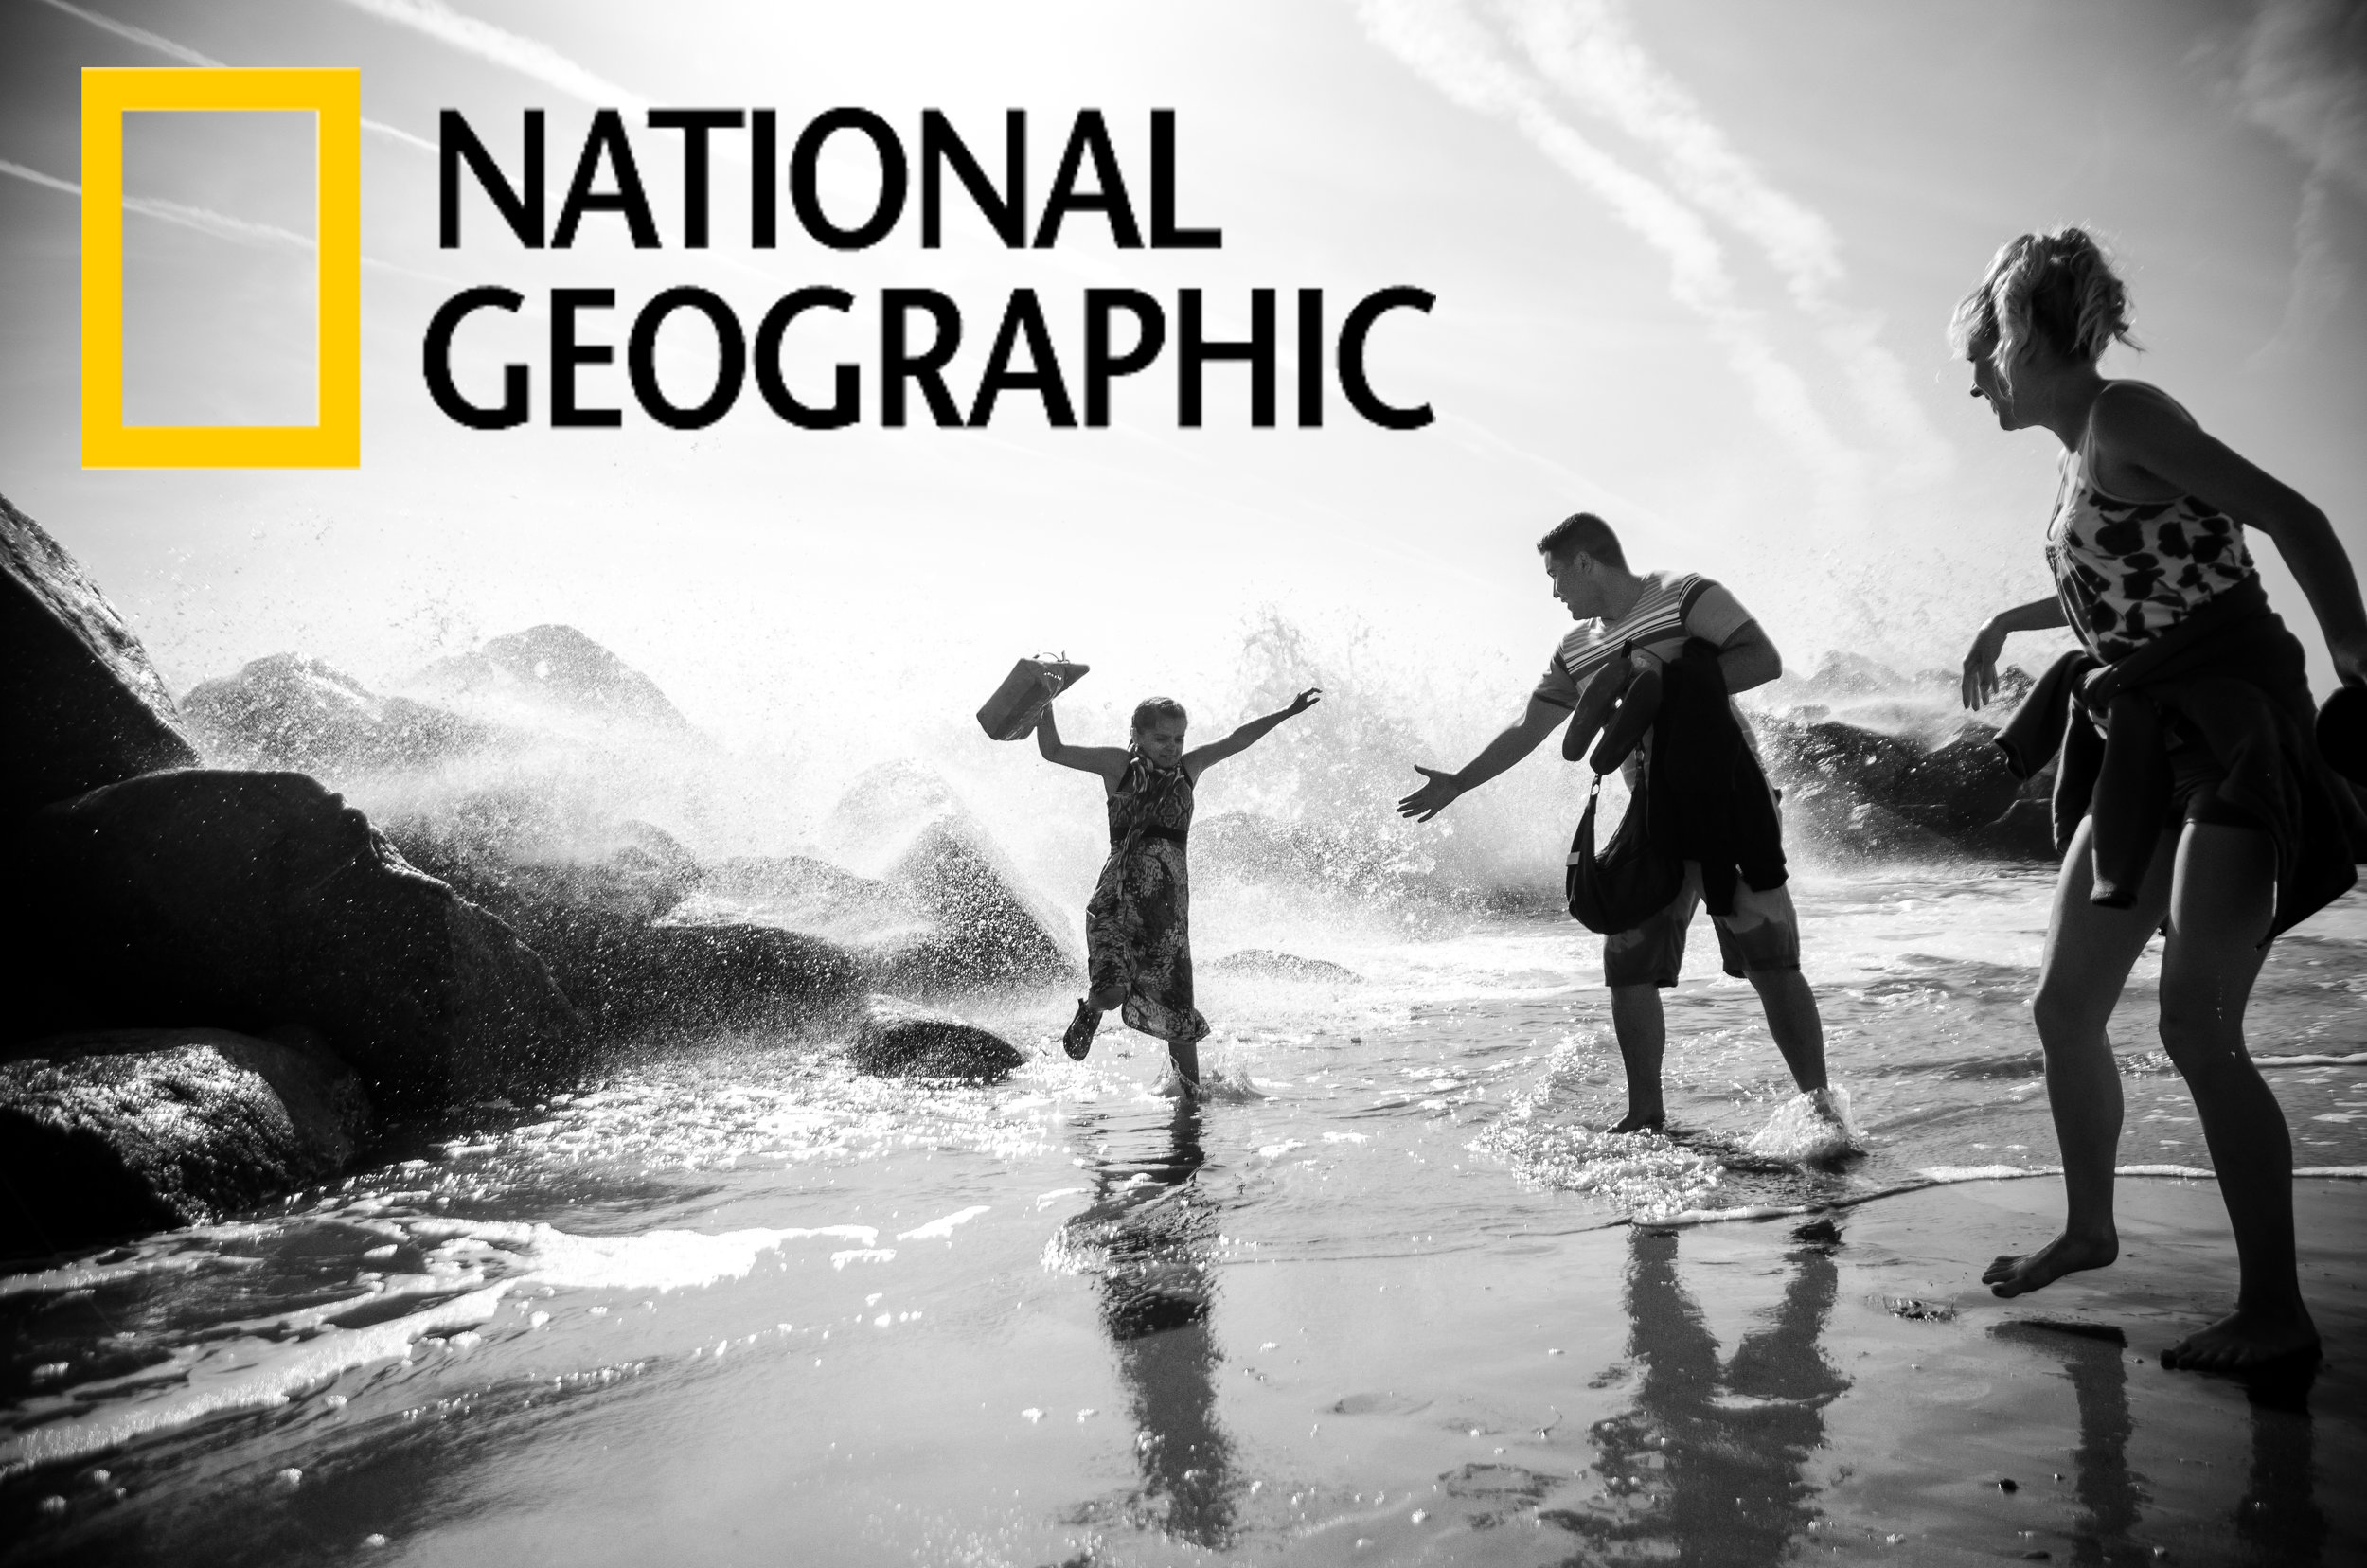 """Published with National Geographic Magazine, """"Sense of Place"""" September 2014 - http://yourshot.nationalgeographic.com/stories/sense-place/"""